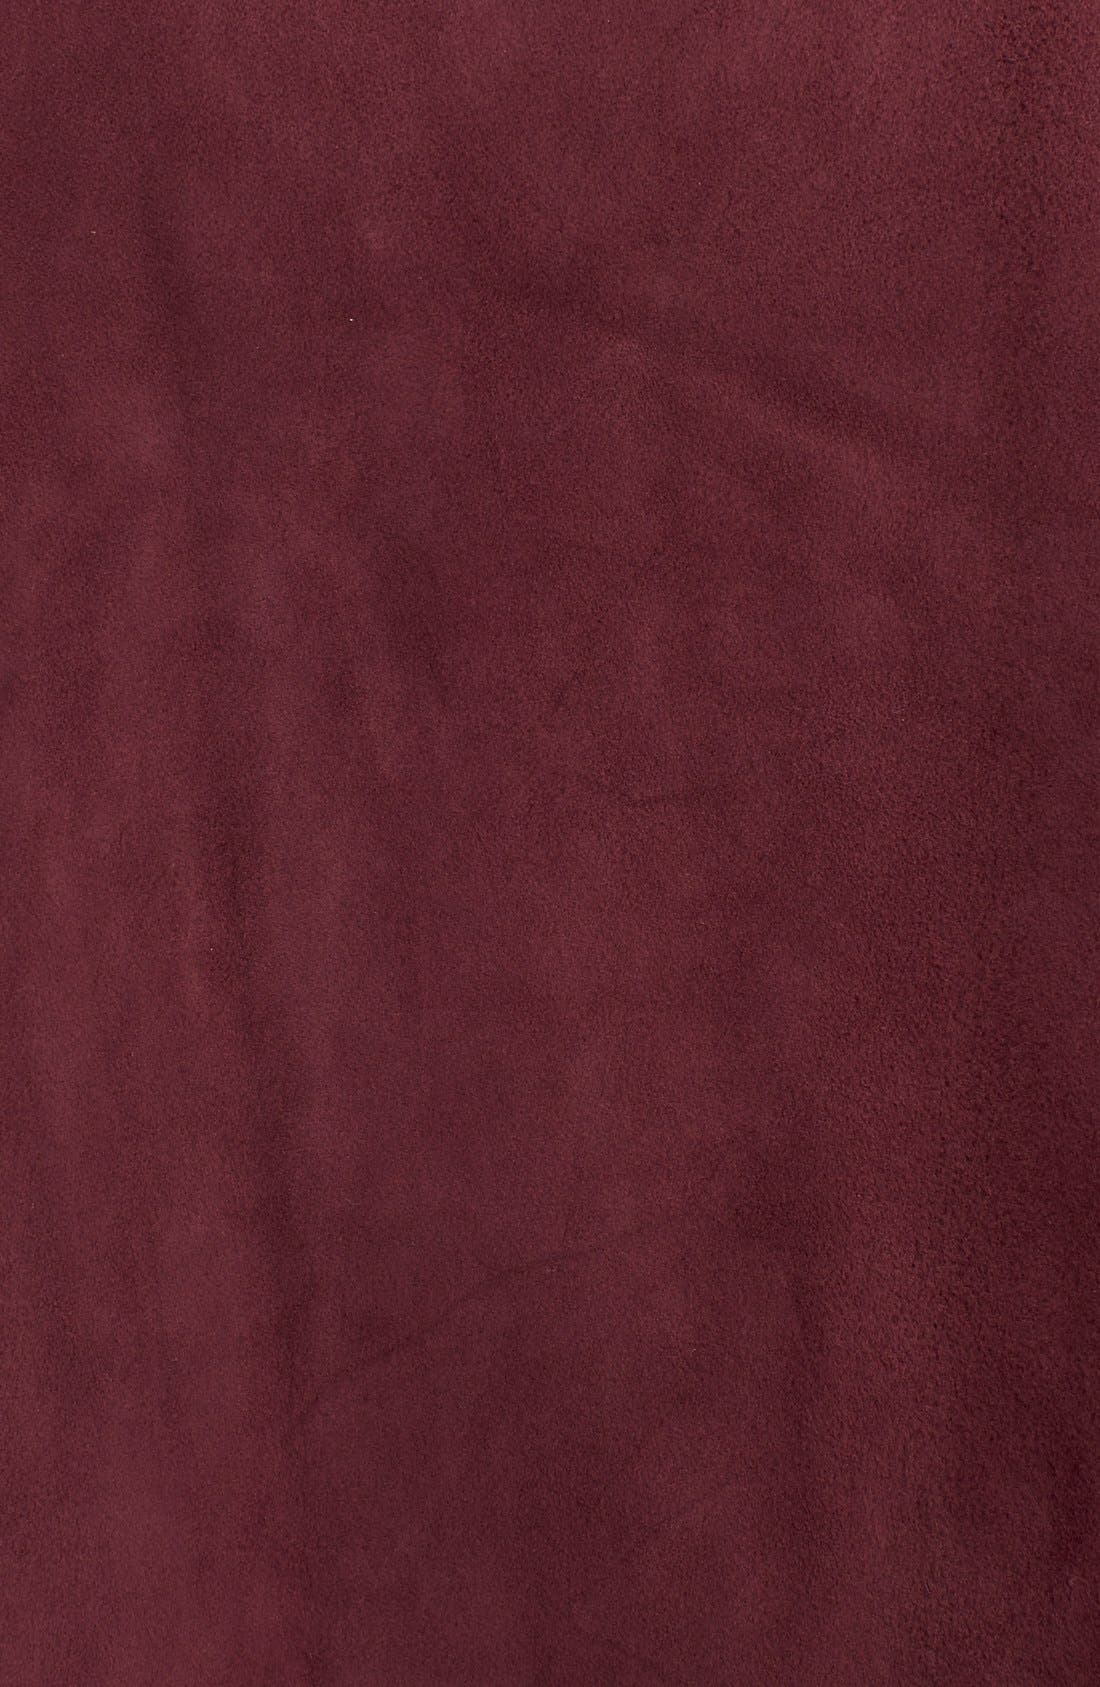 belted suede a-line skirt,                             Alternate thumbnail 3, color,                             619